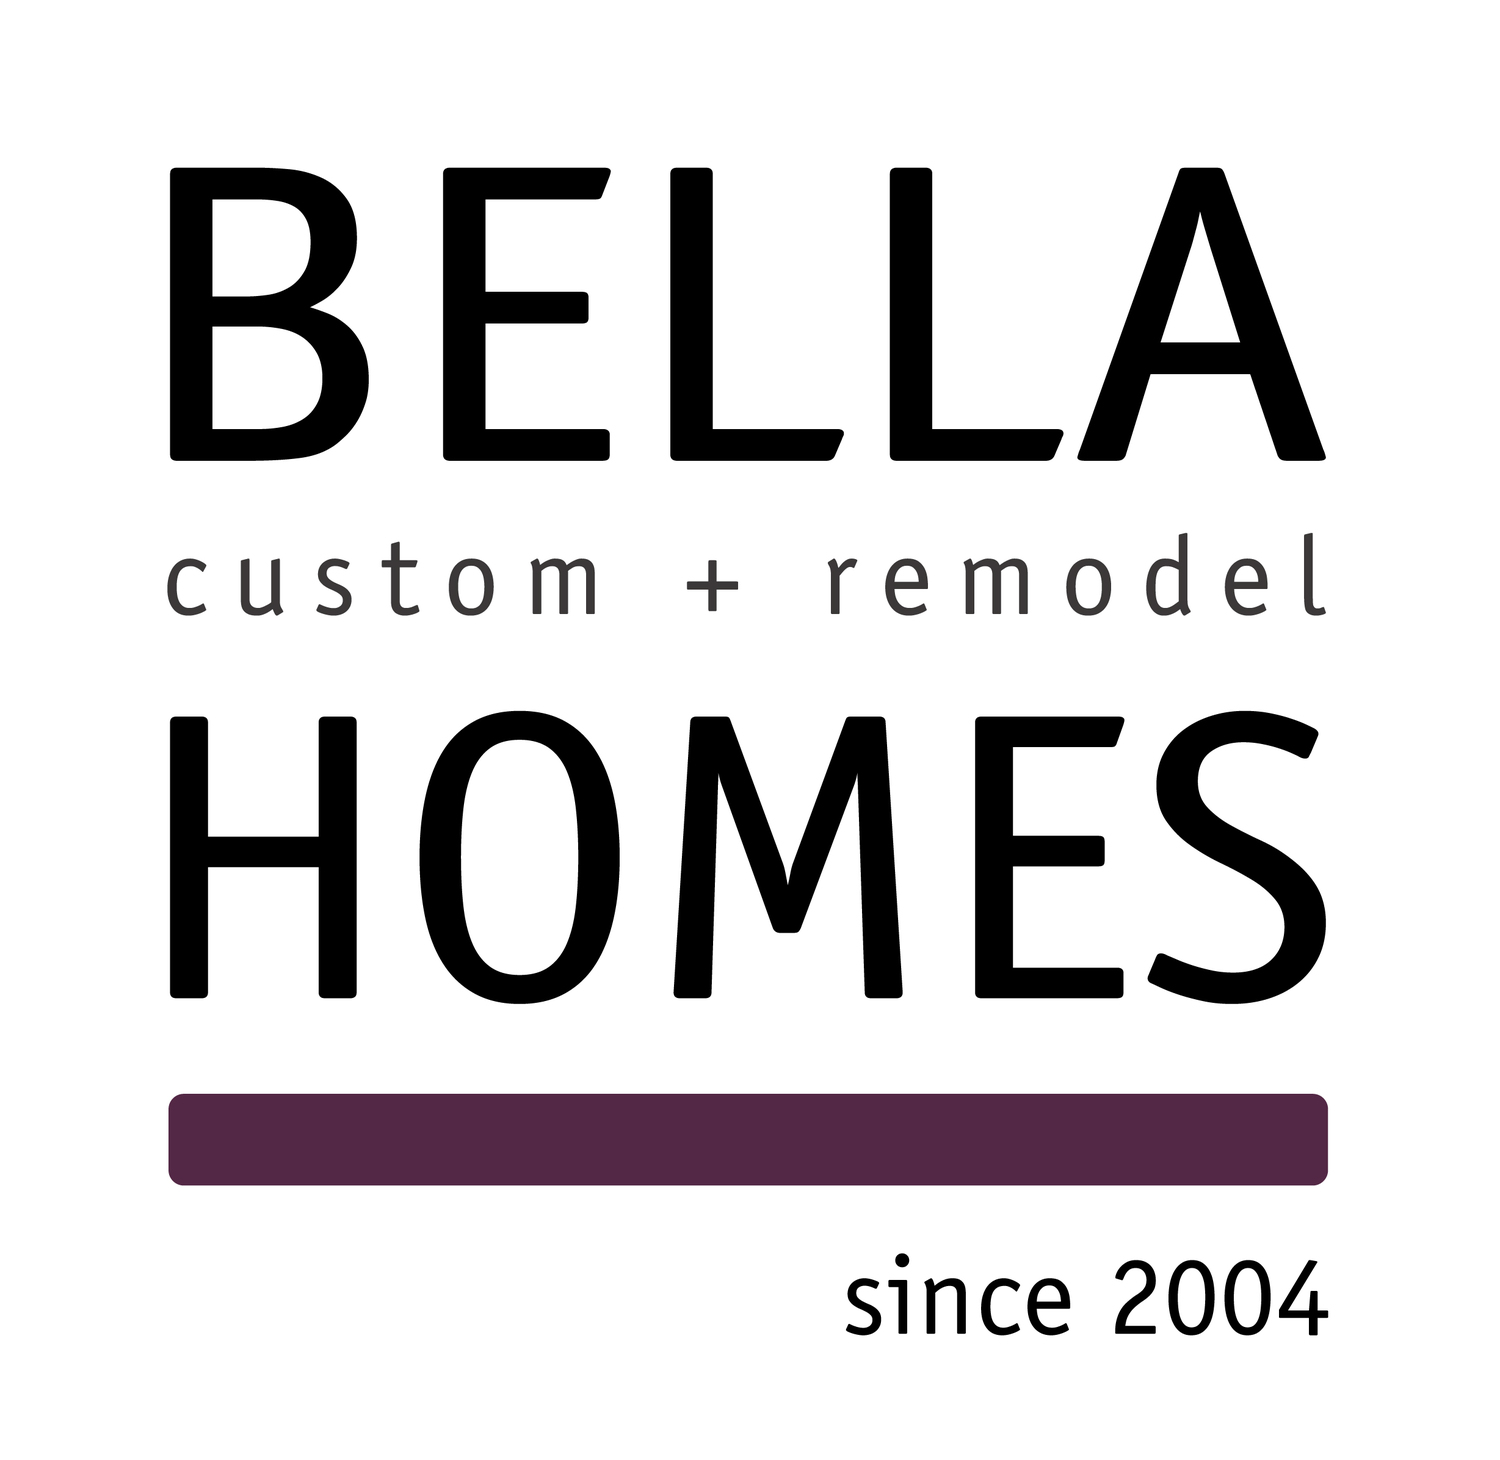 BUILD WITH BELLA